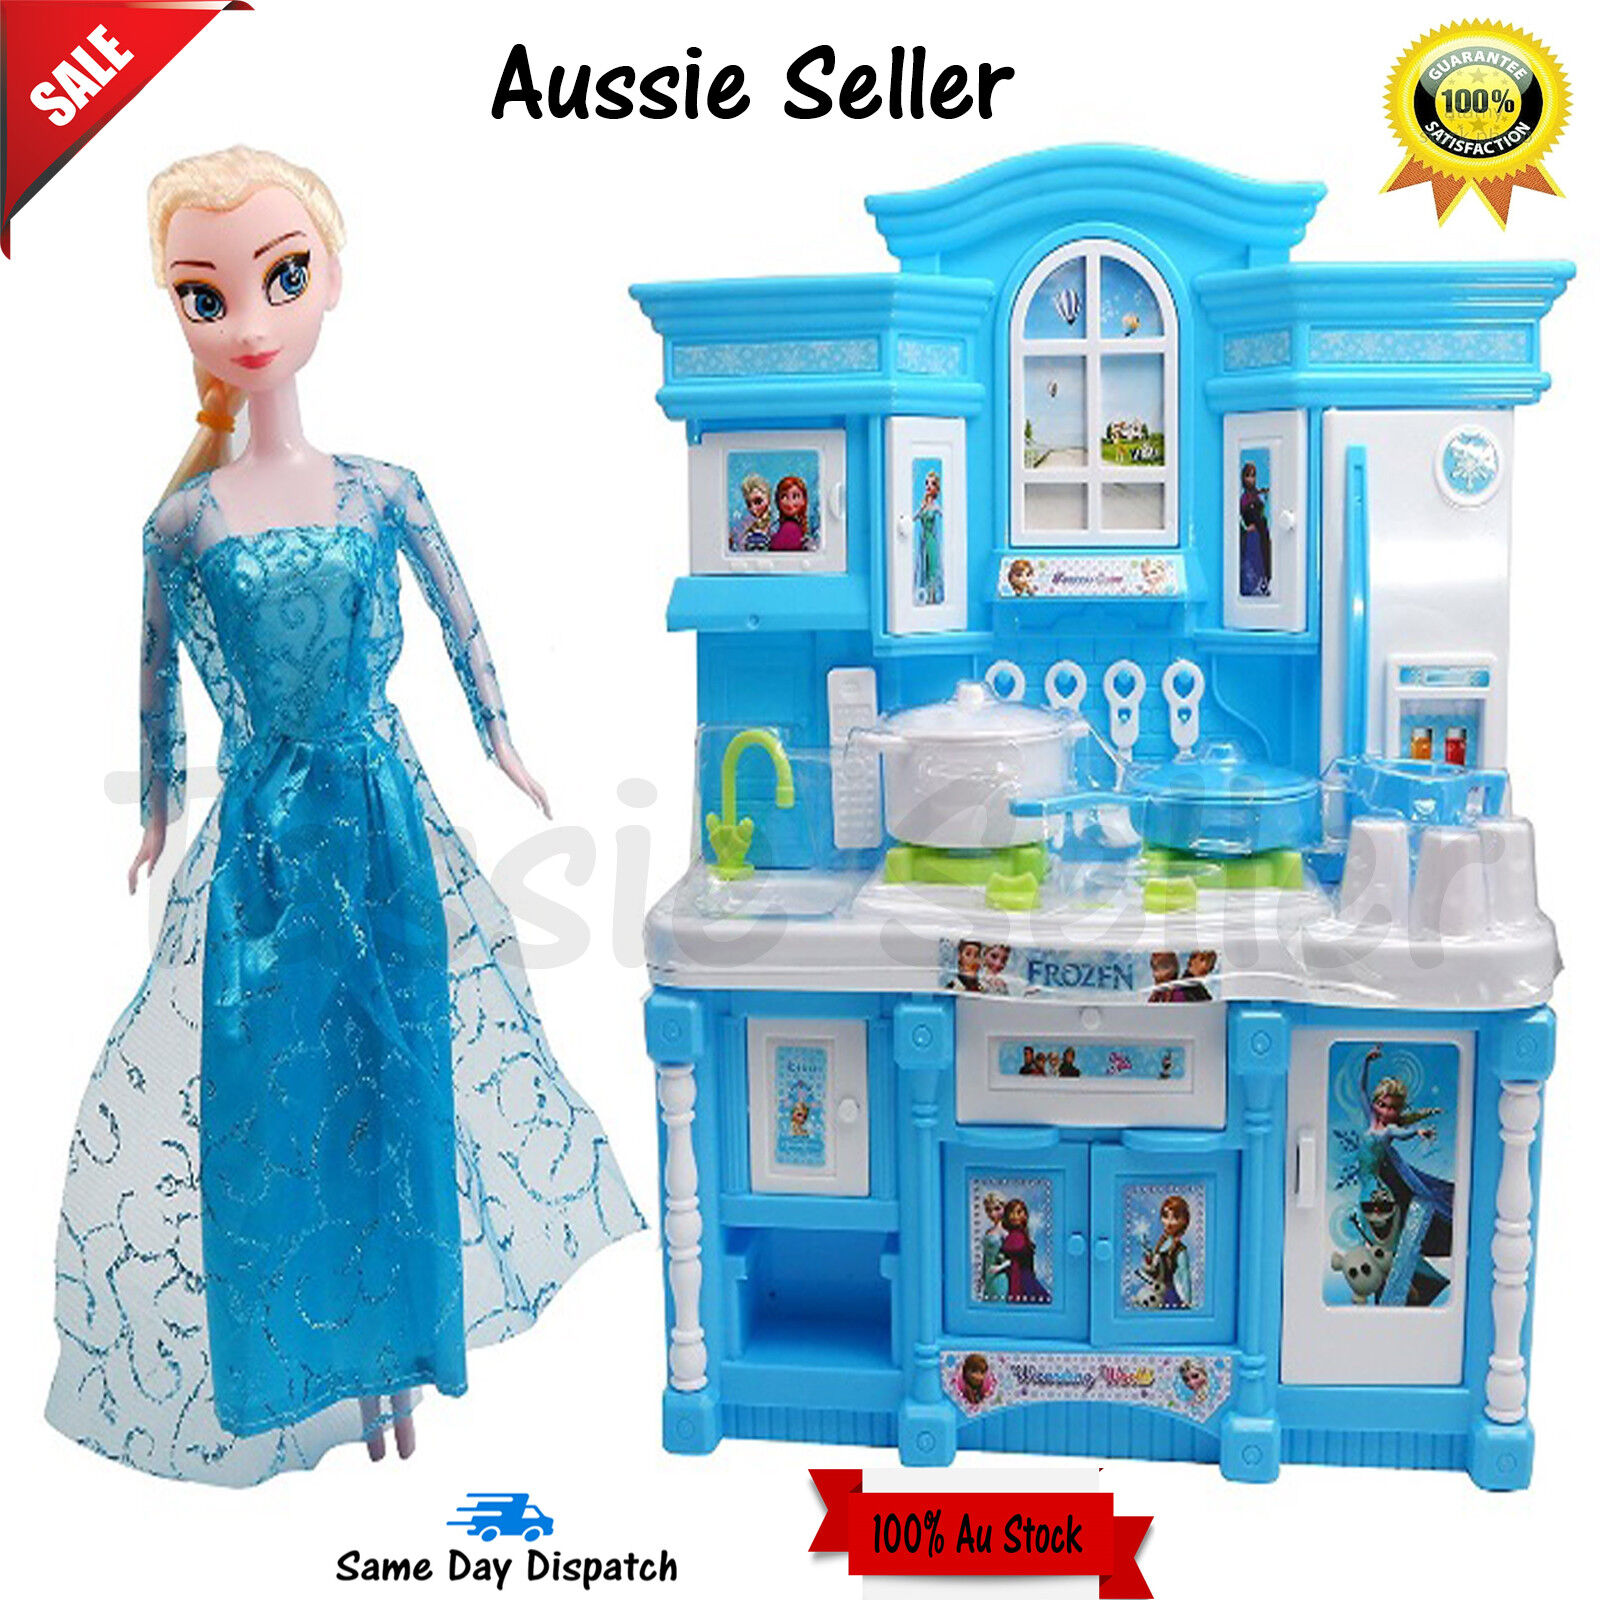 Details about brand new frozen luxury kitchen set play set xmas party gift toy girls kids 2019